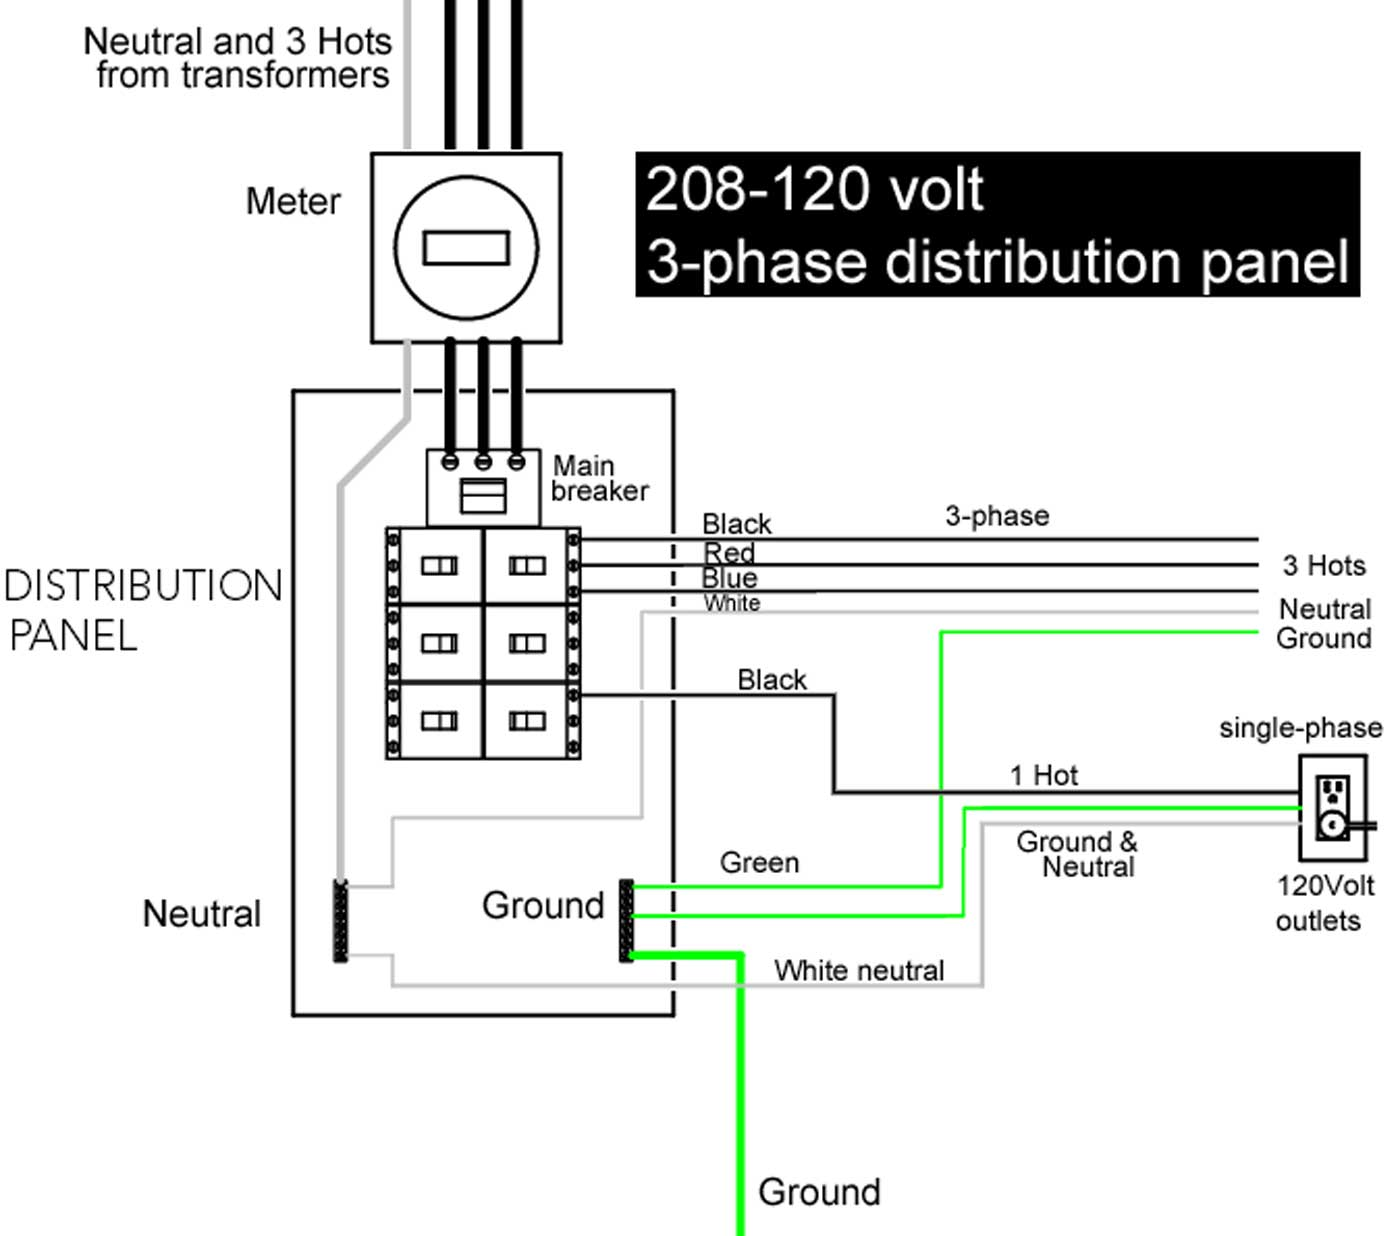 3 phase distribution panel how to wire 3 phase meter box wiring diagram at gsmx.co